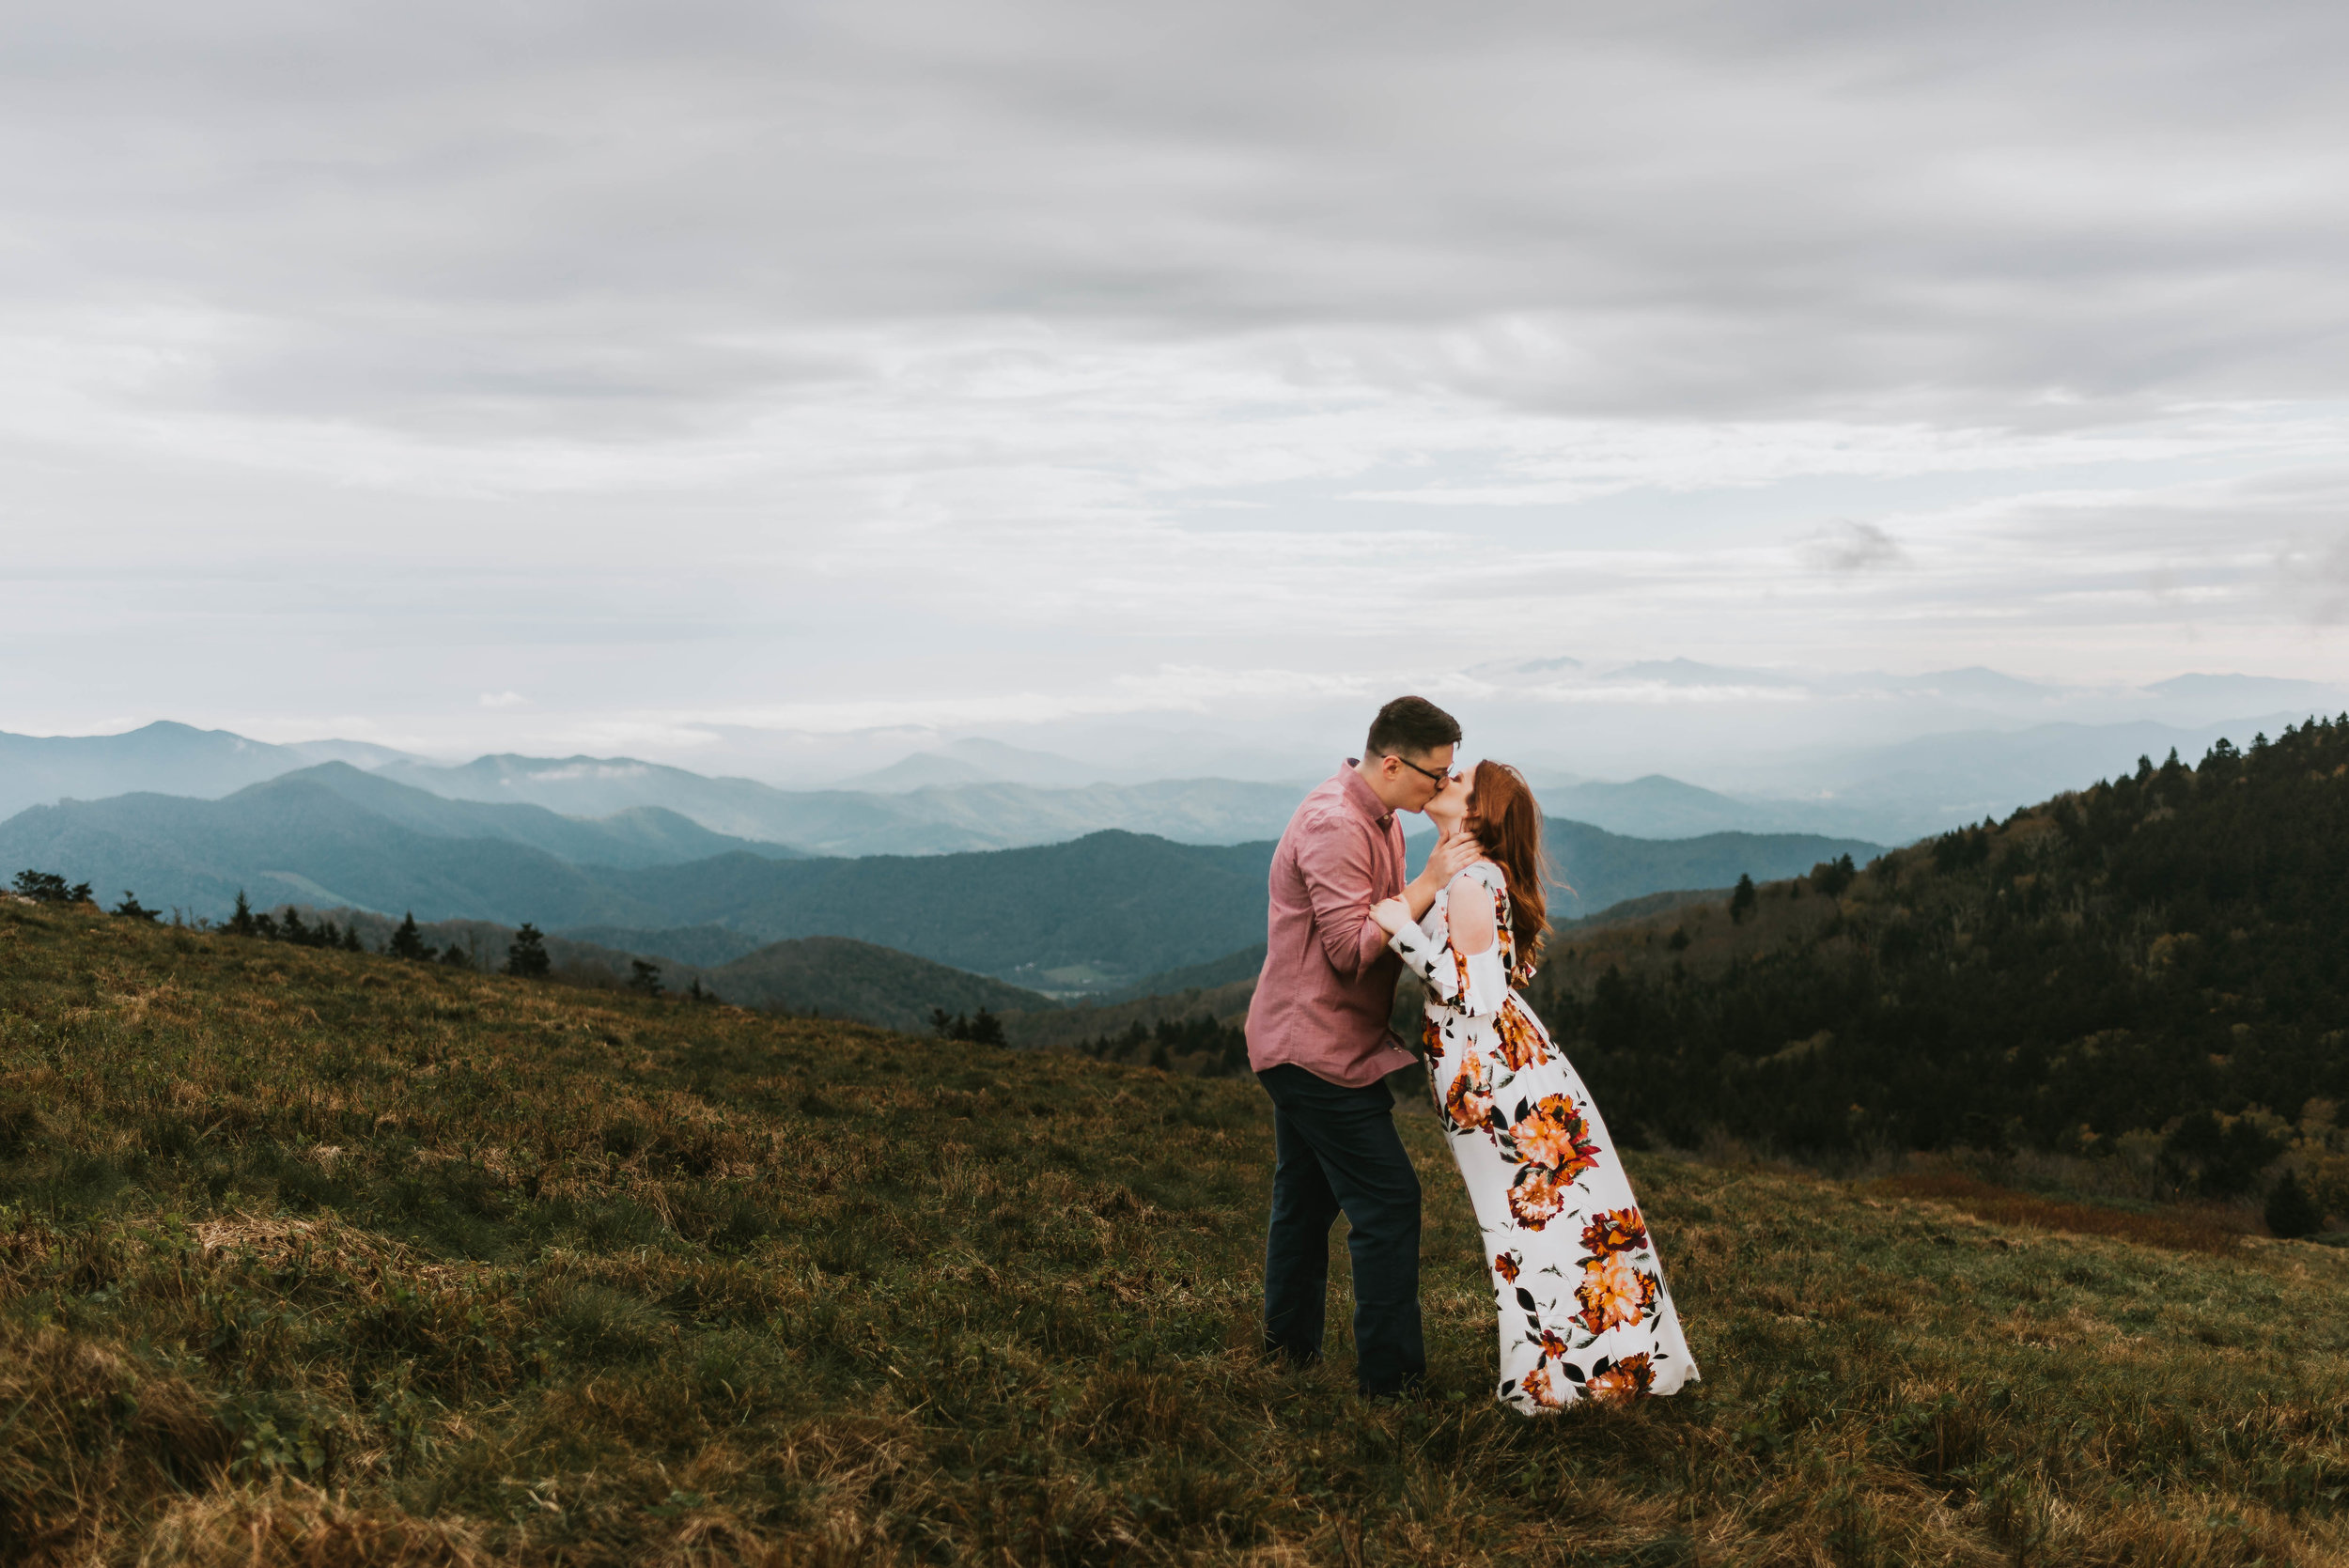 Roan Mountain Engagement Session, Roan Mountain Elopement, Roan Mountain Wedding Northeast Tennessee Wedding Photography, East Tennessee Wedding Photography, Knoxville, Tennessee Wedding Photography